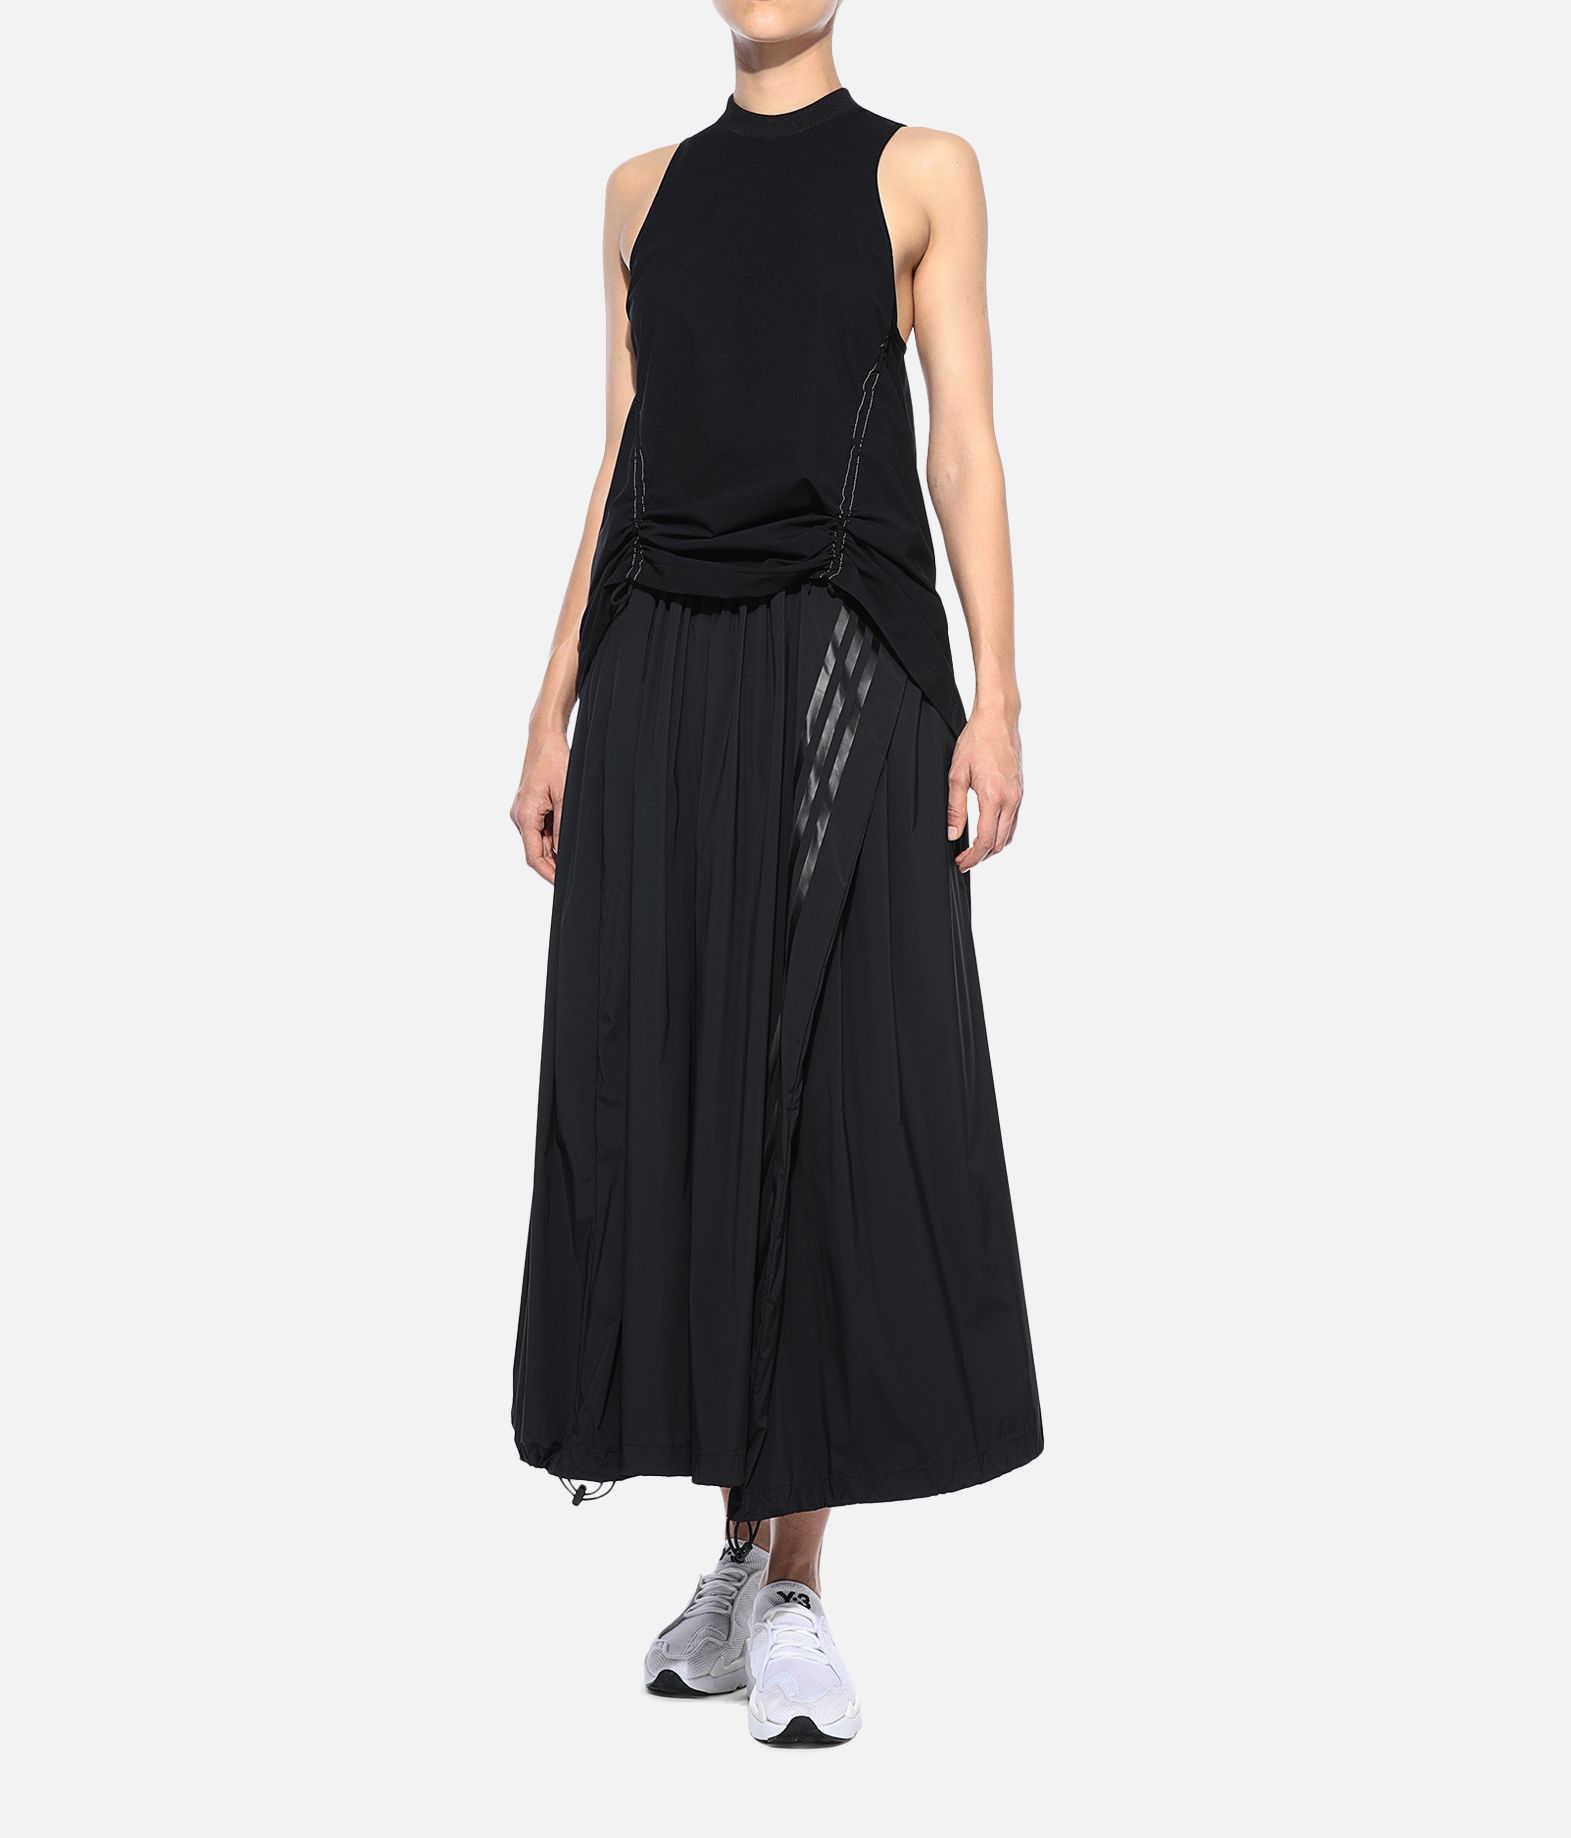 Y-3 Y-3 Light 3-Stripes Tank Top Top Woman a